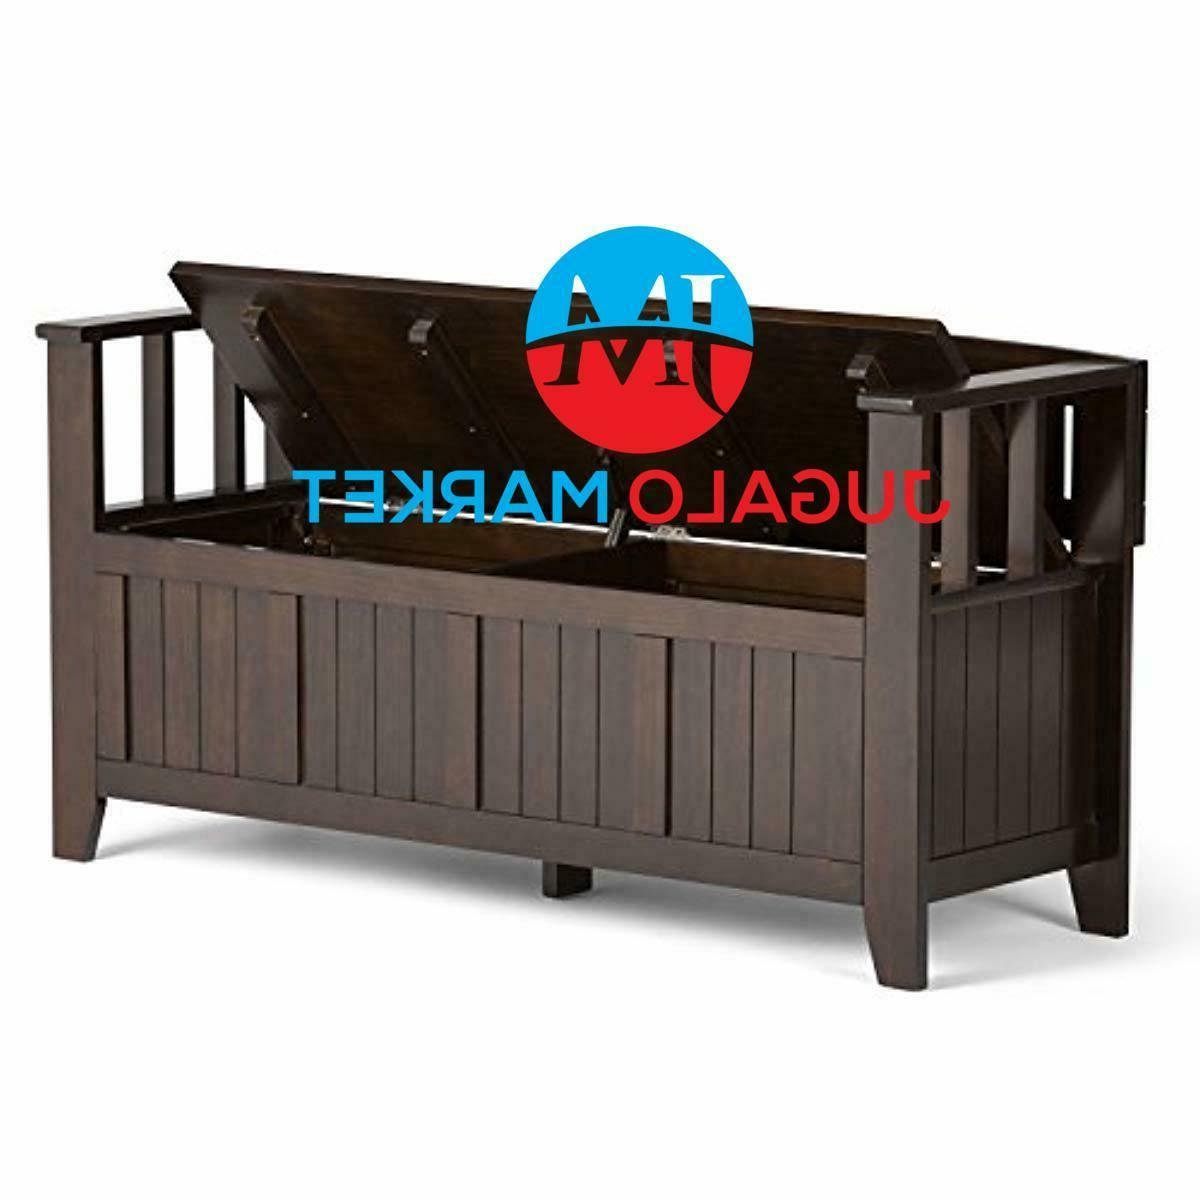 Simpli Home Solid Wood 48 inch wide Bench